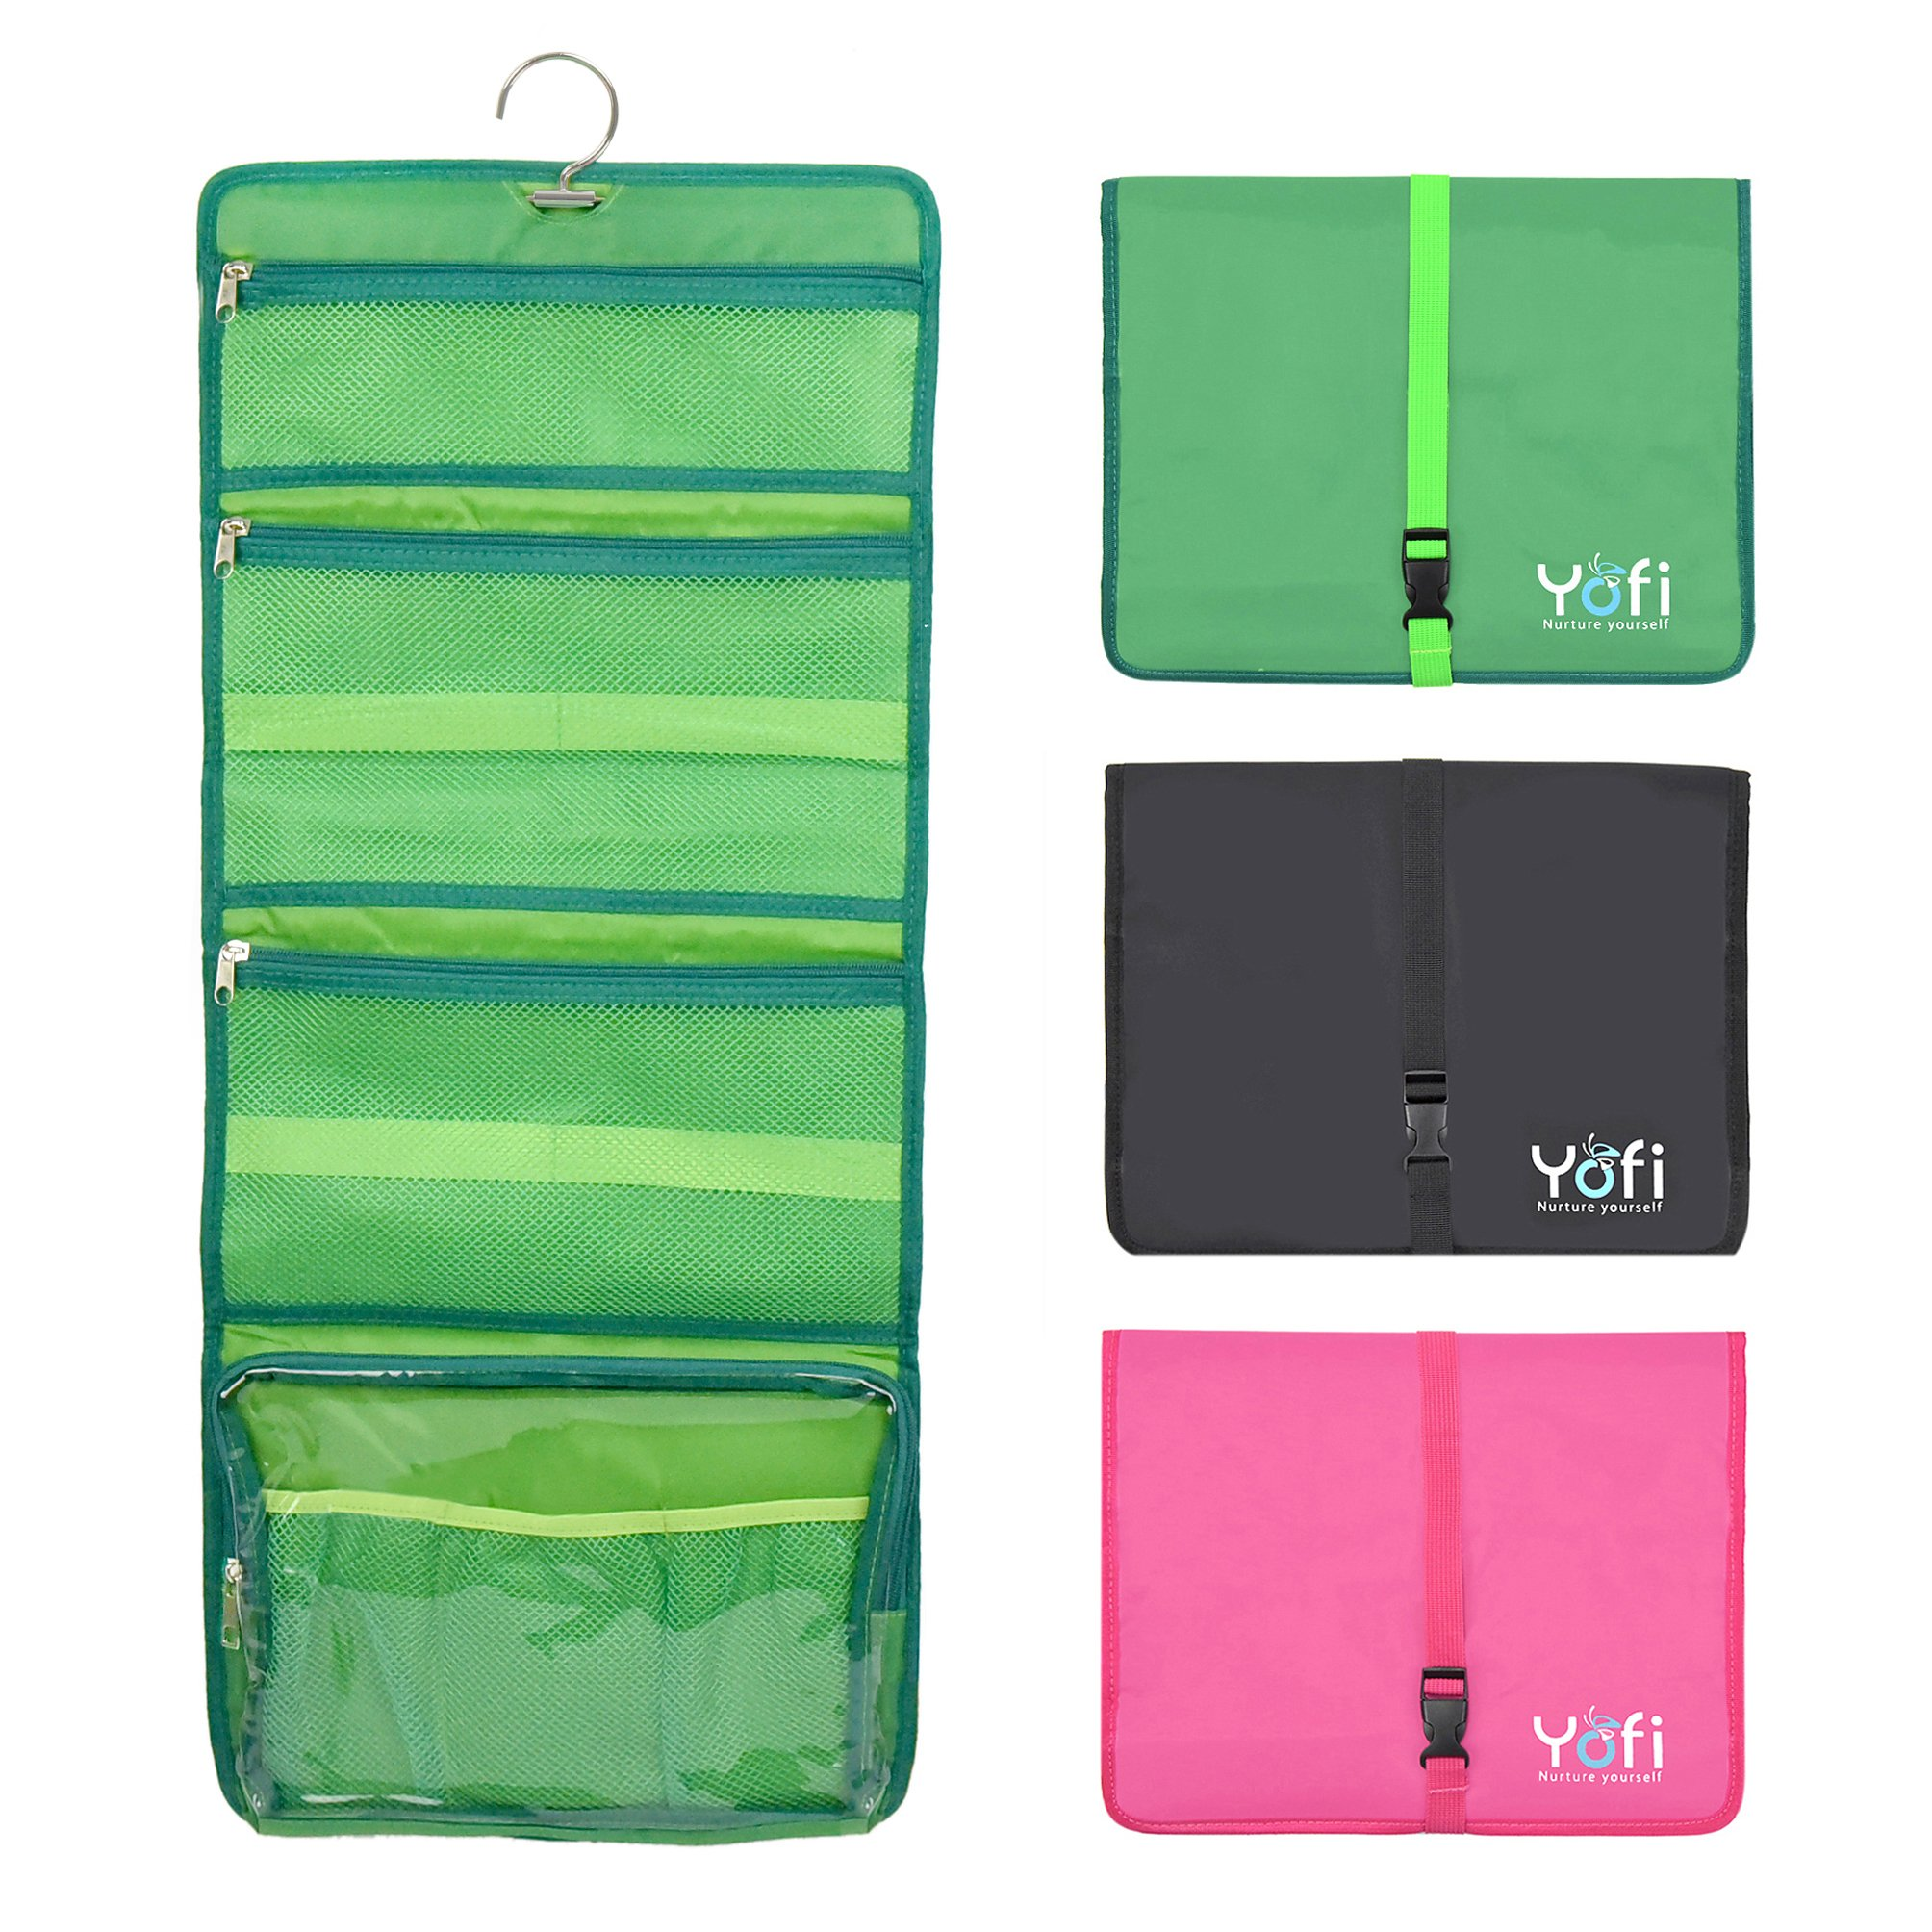 Yofi Nurture yourself Hanging Toiletry Bag Organizer for Cosmetics, Makeup, Jewelry, Toiletries, Shaving Tools in Green Expandable, Polyester Case with Zippers and Sections for Home or Traveling